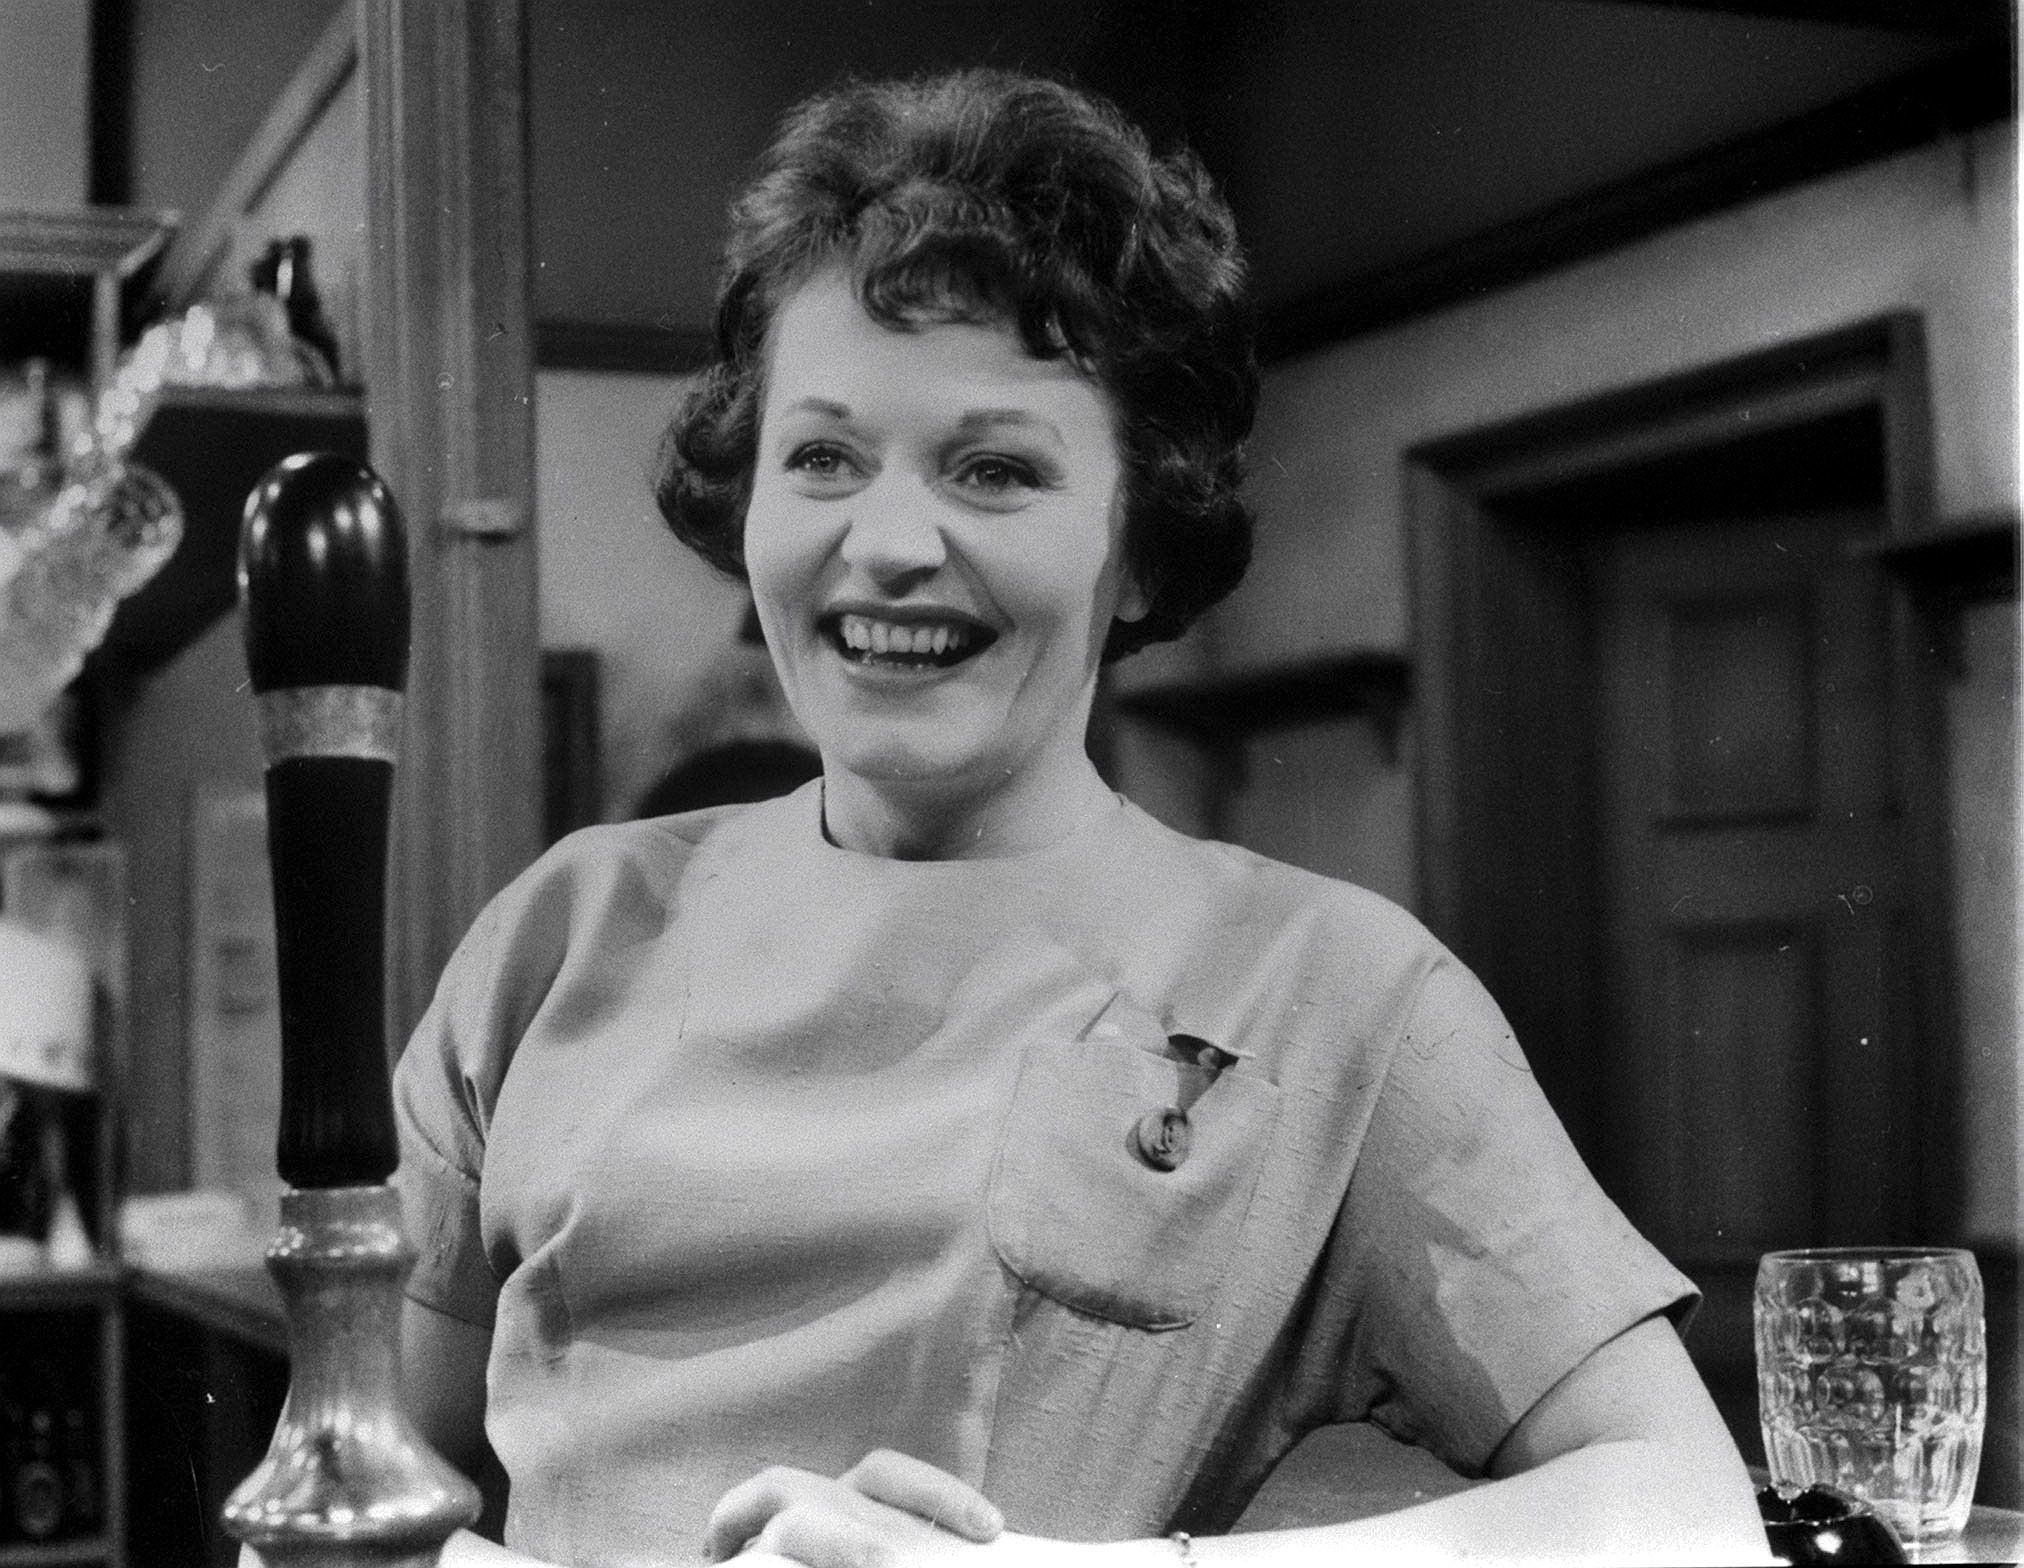 Doreen Keogh was the firstbarmaid to pull pints in the Rovers